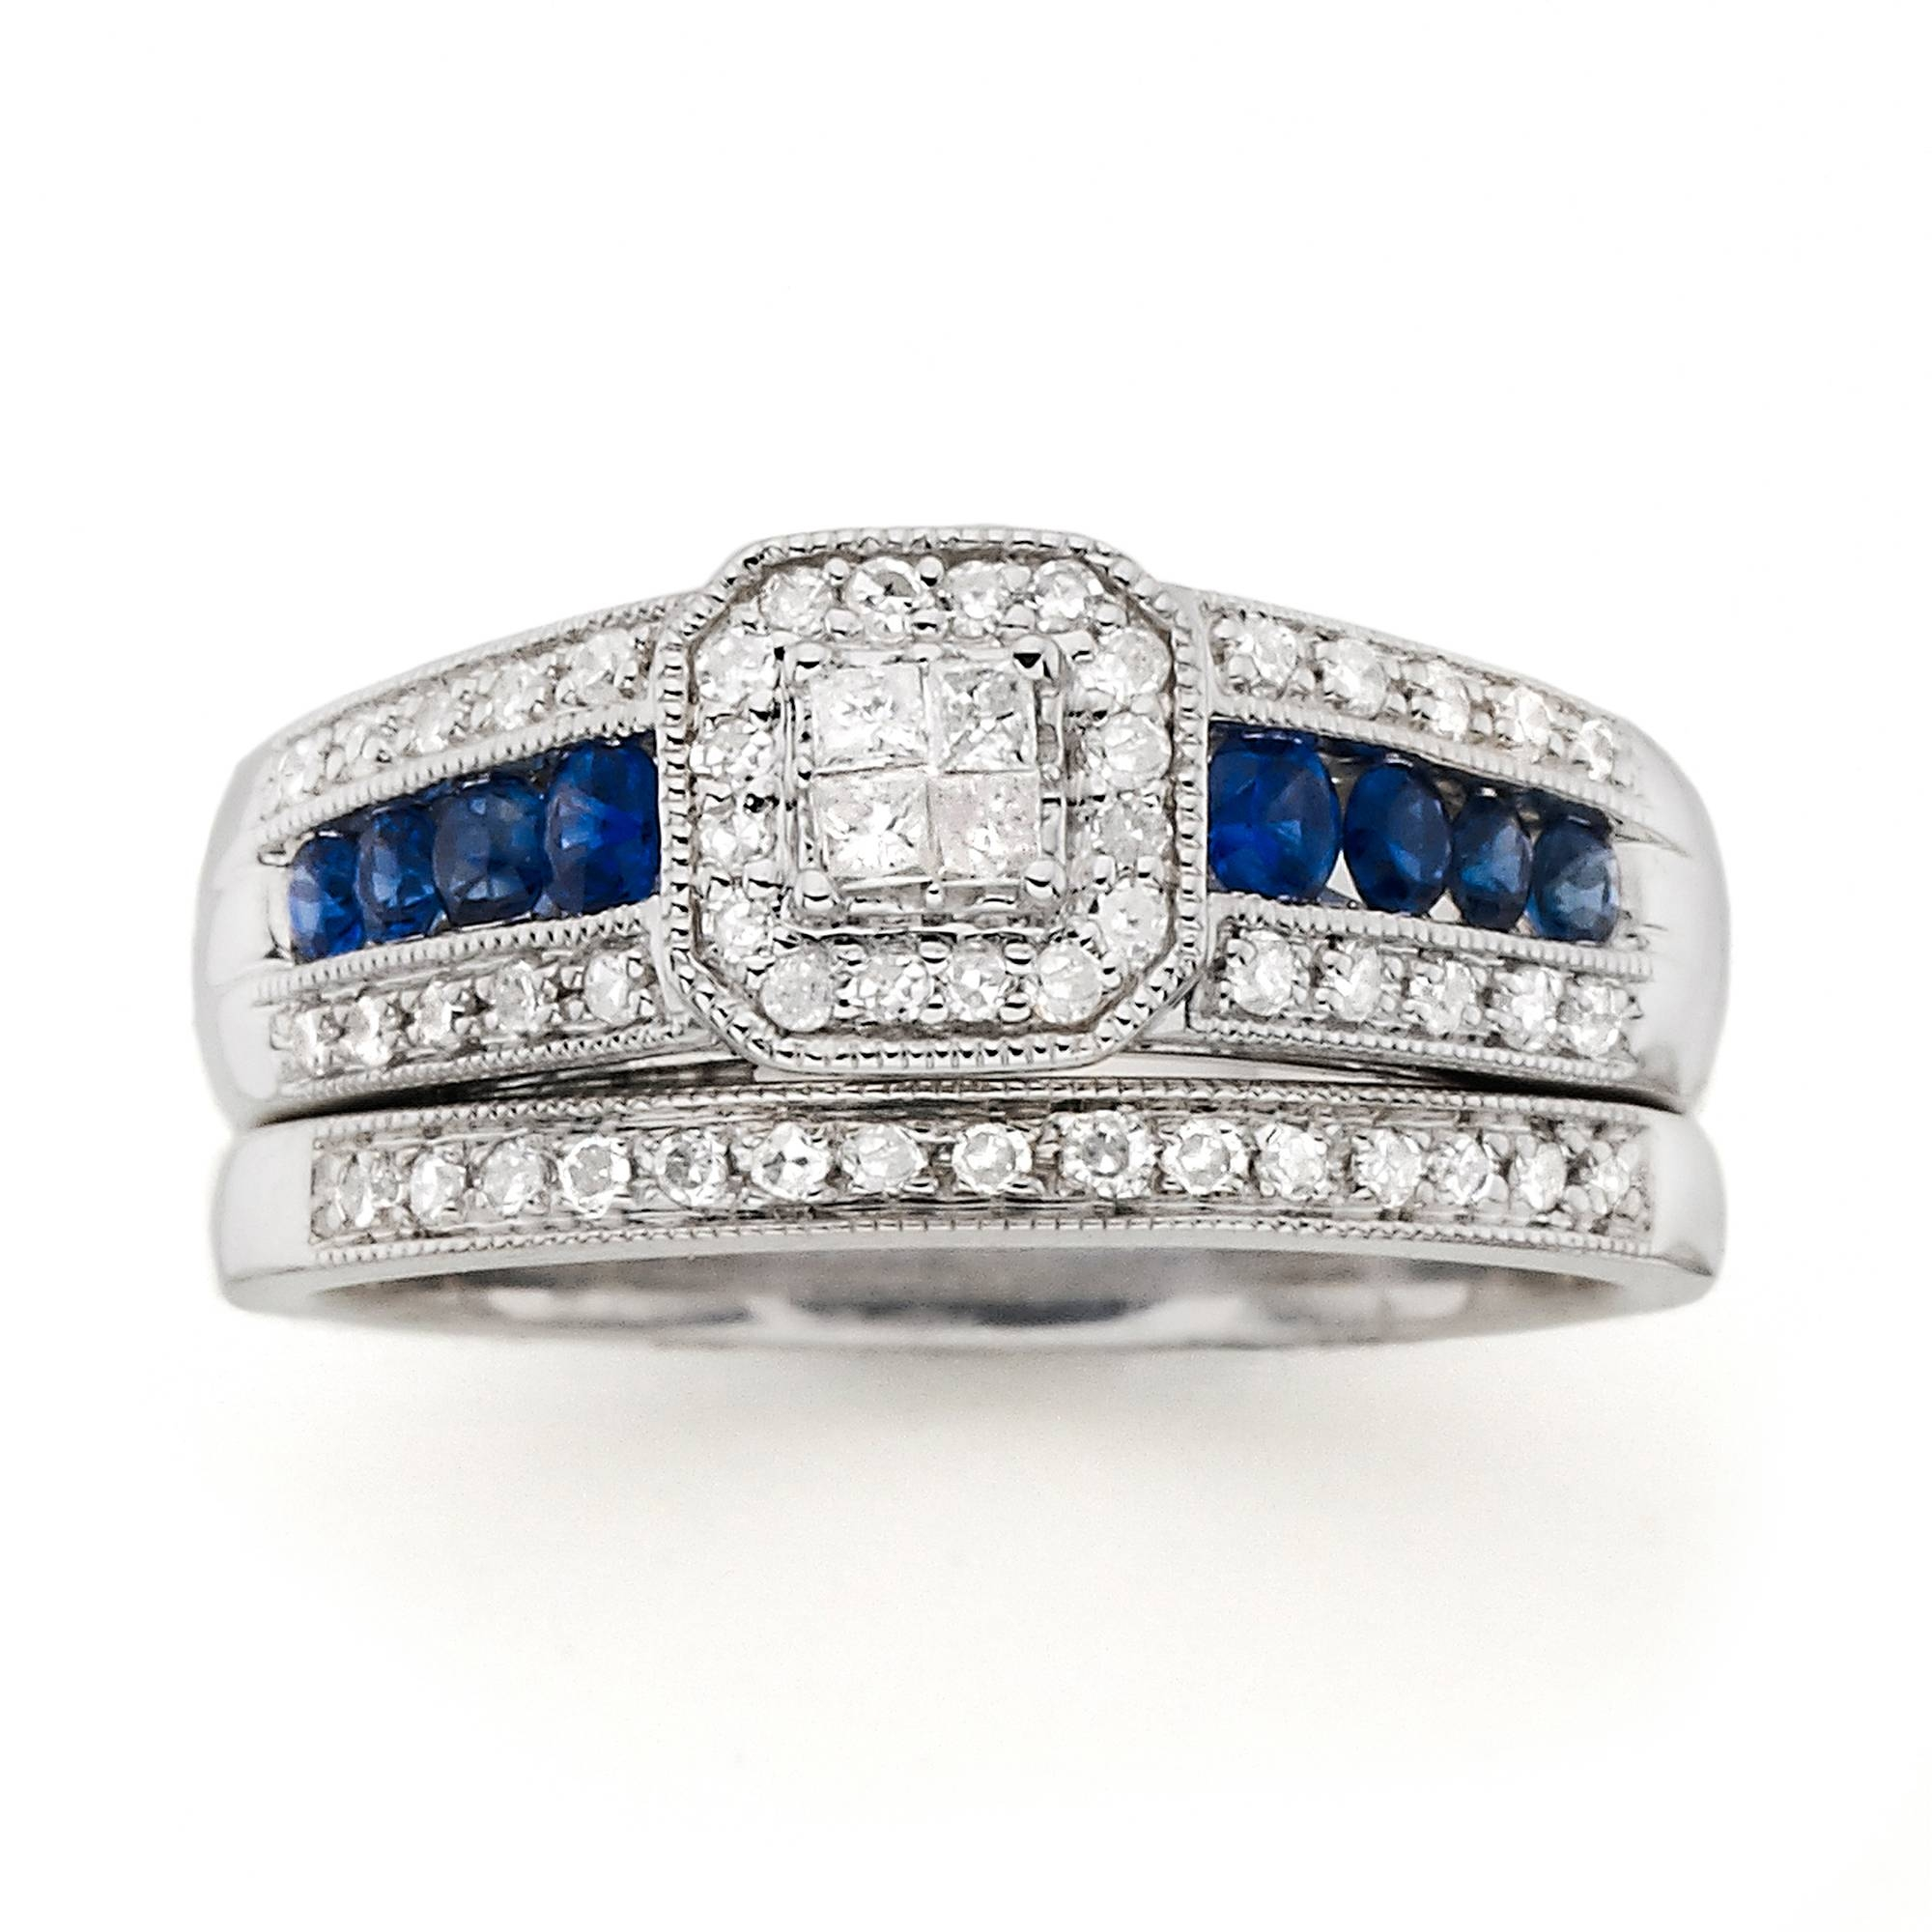 of bridal real pianetti ring luxury daniel jewellery sets help that your fake life look best blue wedding